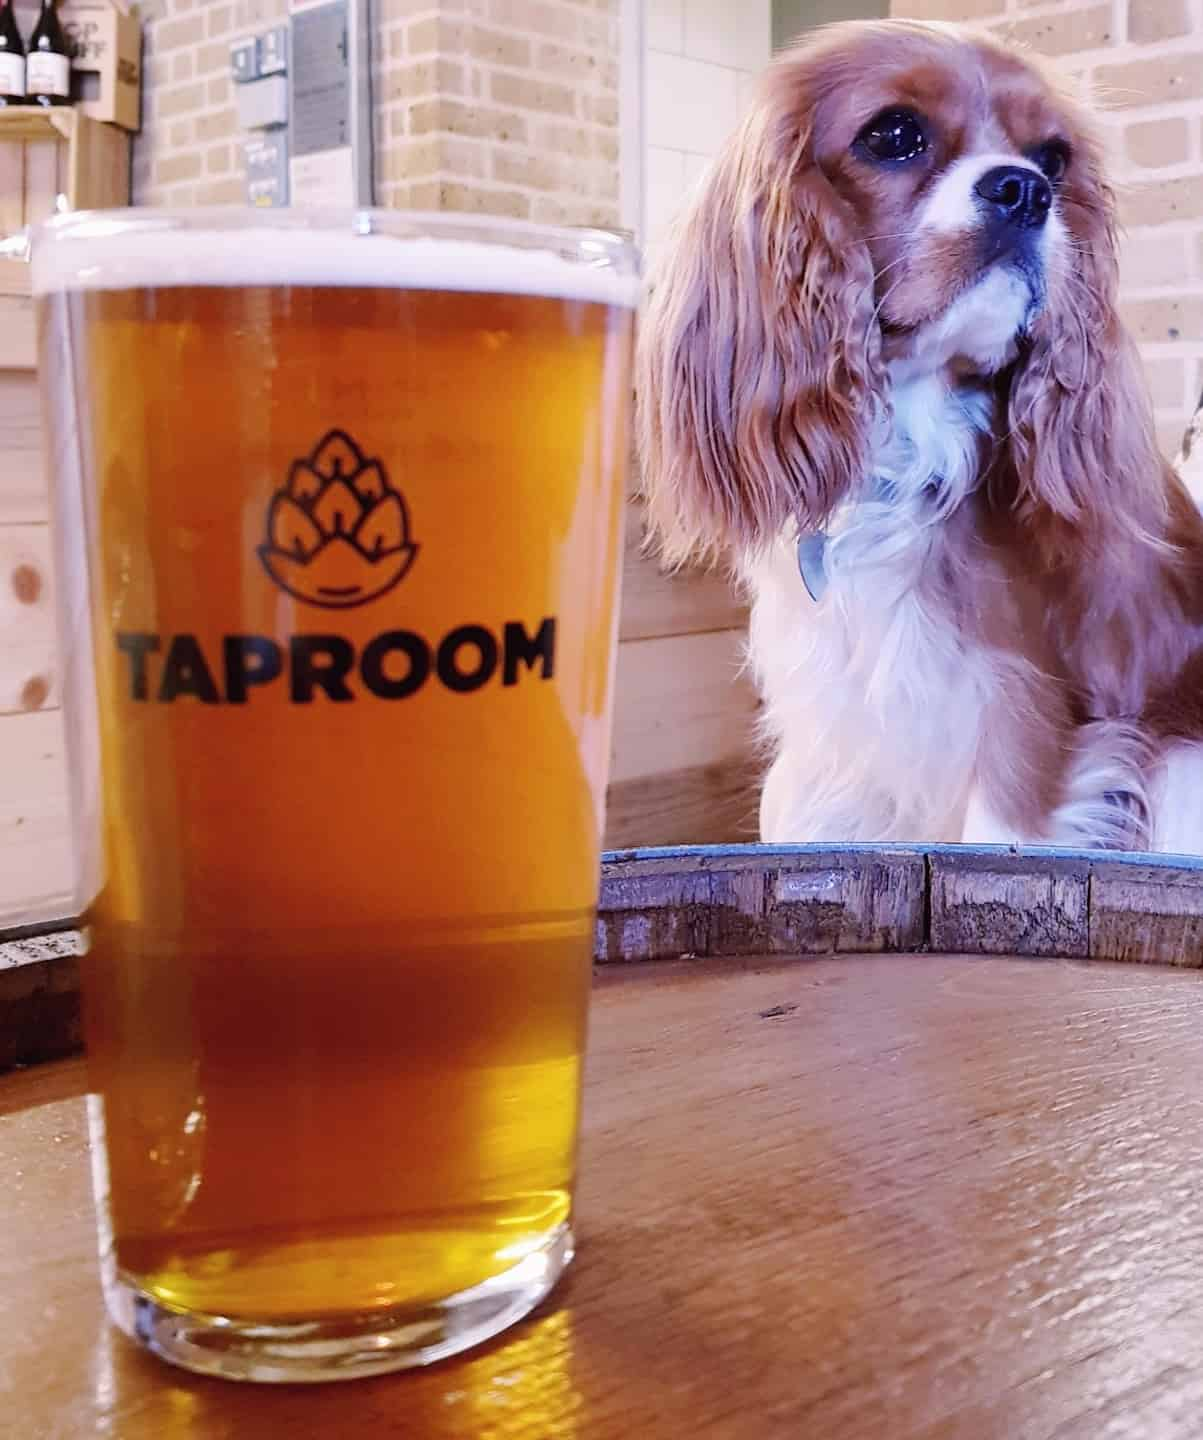 My Dog Friendly London by Amber The Cav - The Tap Room 6